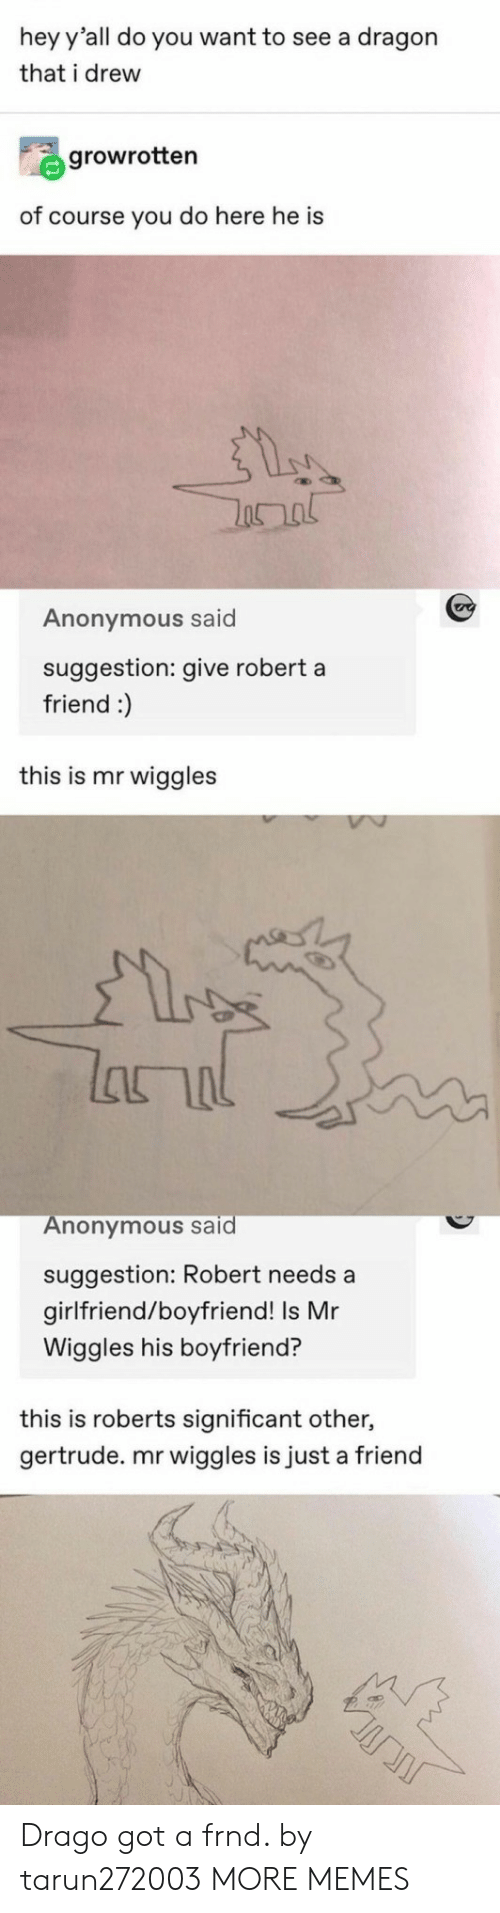 roberts: hey y'all do you want to see a dragon  that i drew  growrotten  of course you do here he is  Anonymous said  suggestion: give robert a  friend :)  this is mr wiggles  lanal  Anonymous said  suggestion: Robert needs a  girlfriend/boyfriend! Is Mr  Wiggles his boyfriend?  this is roberts significant other,  gertrude. mr wiggles is just a friend Drago got a frnd. by tarun272003 MORE MEMES